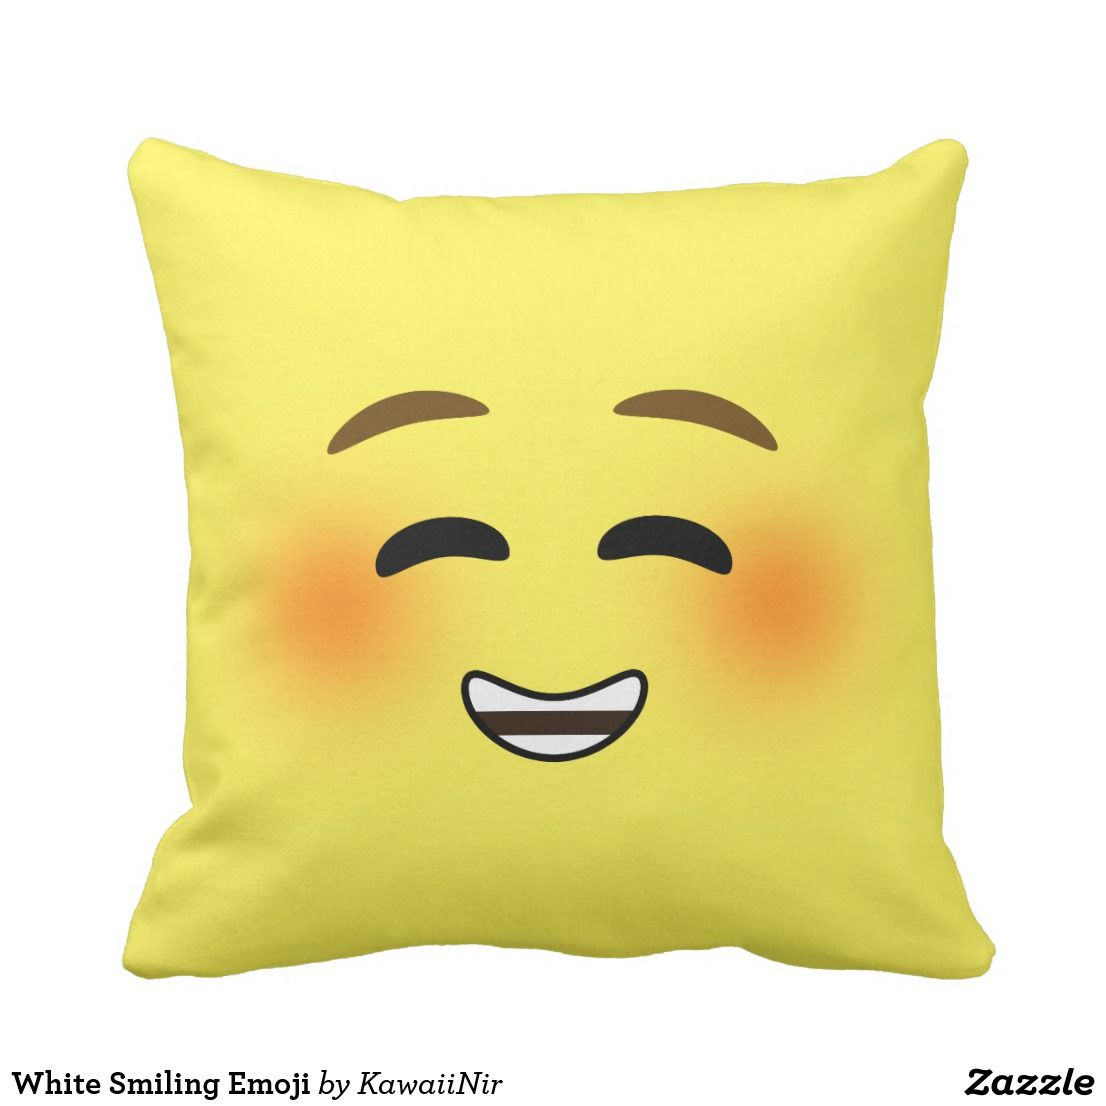 White Smiling Emoji Throw Pillow Zazzle Com Emoji Pillows Throw Pillows Pillows